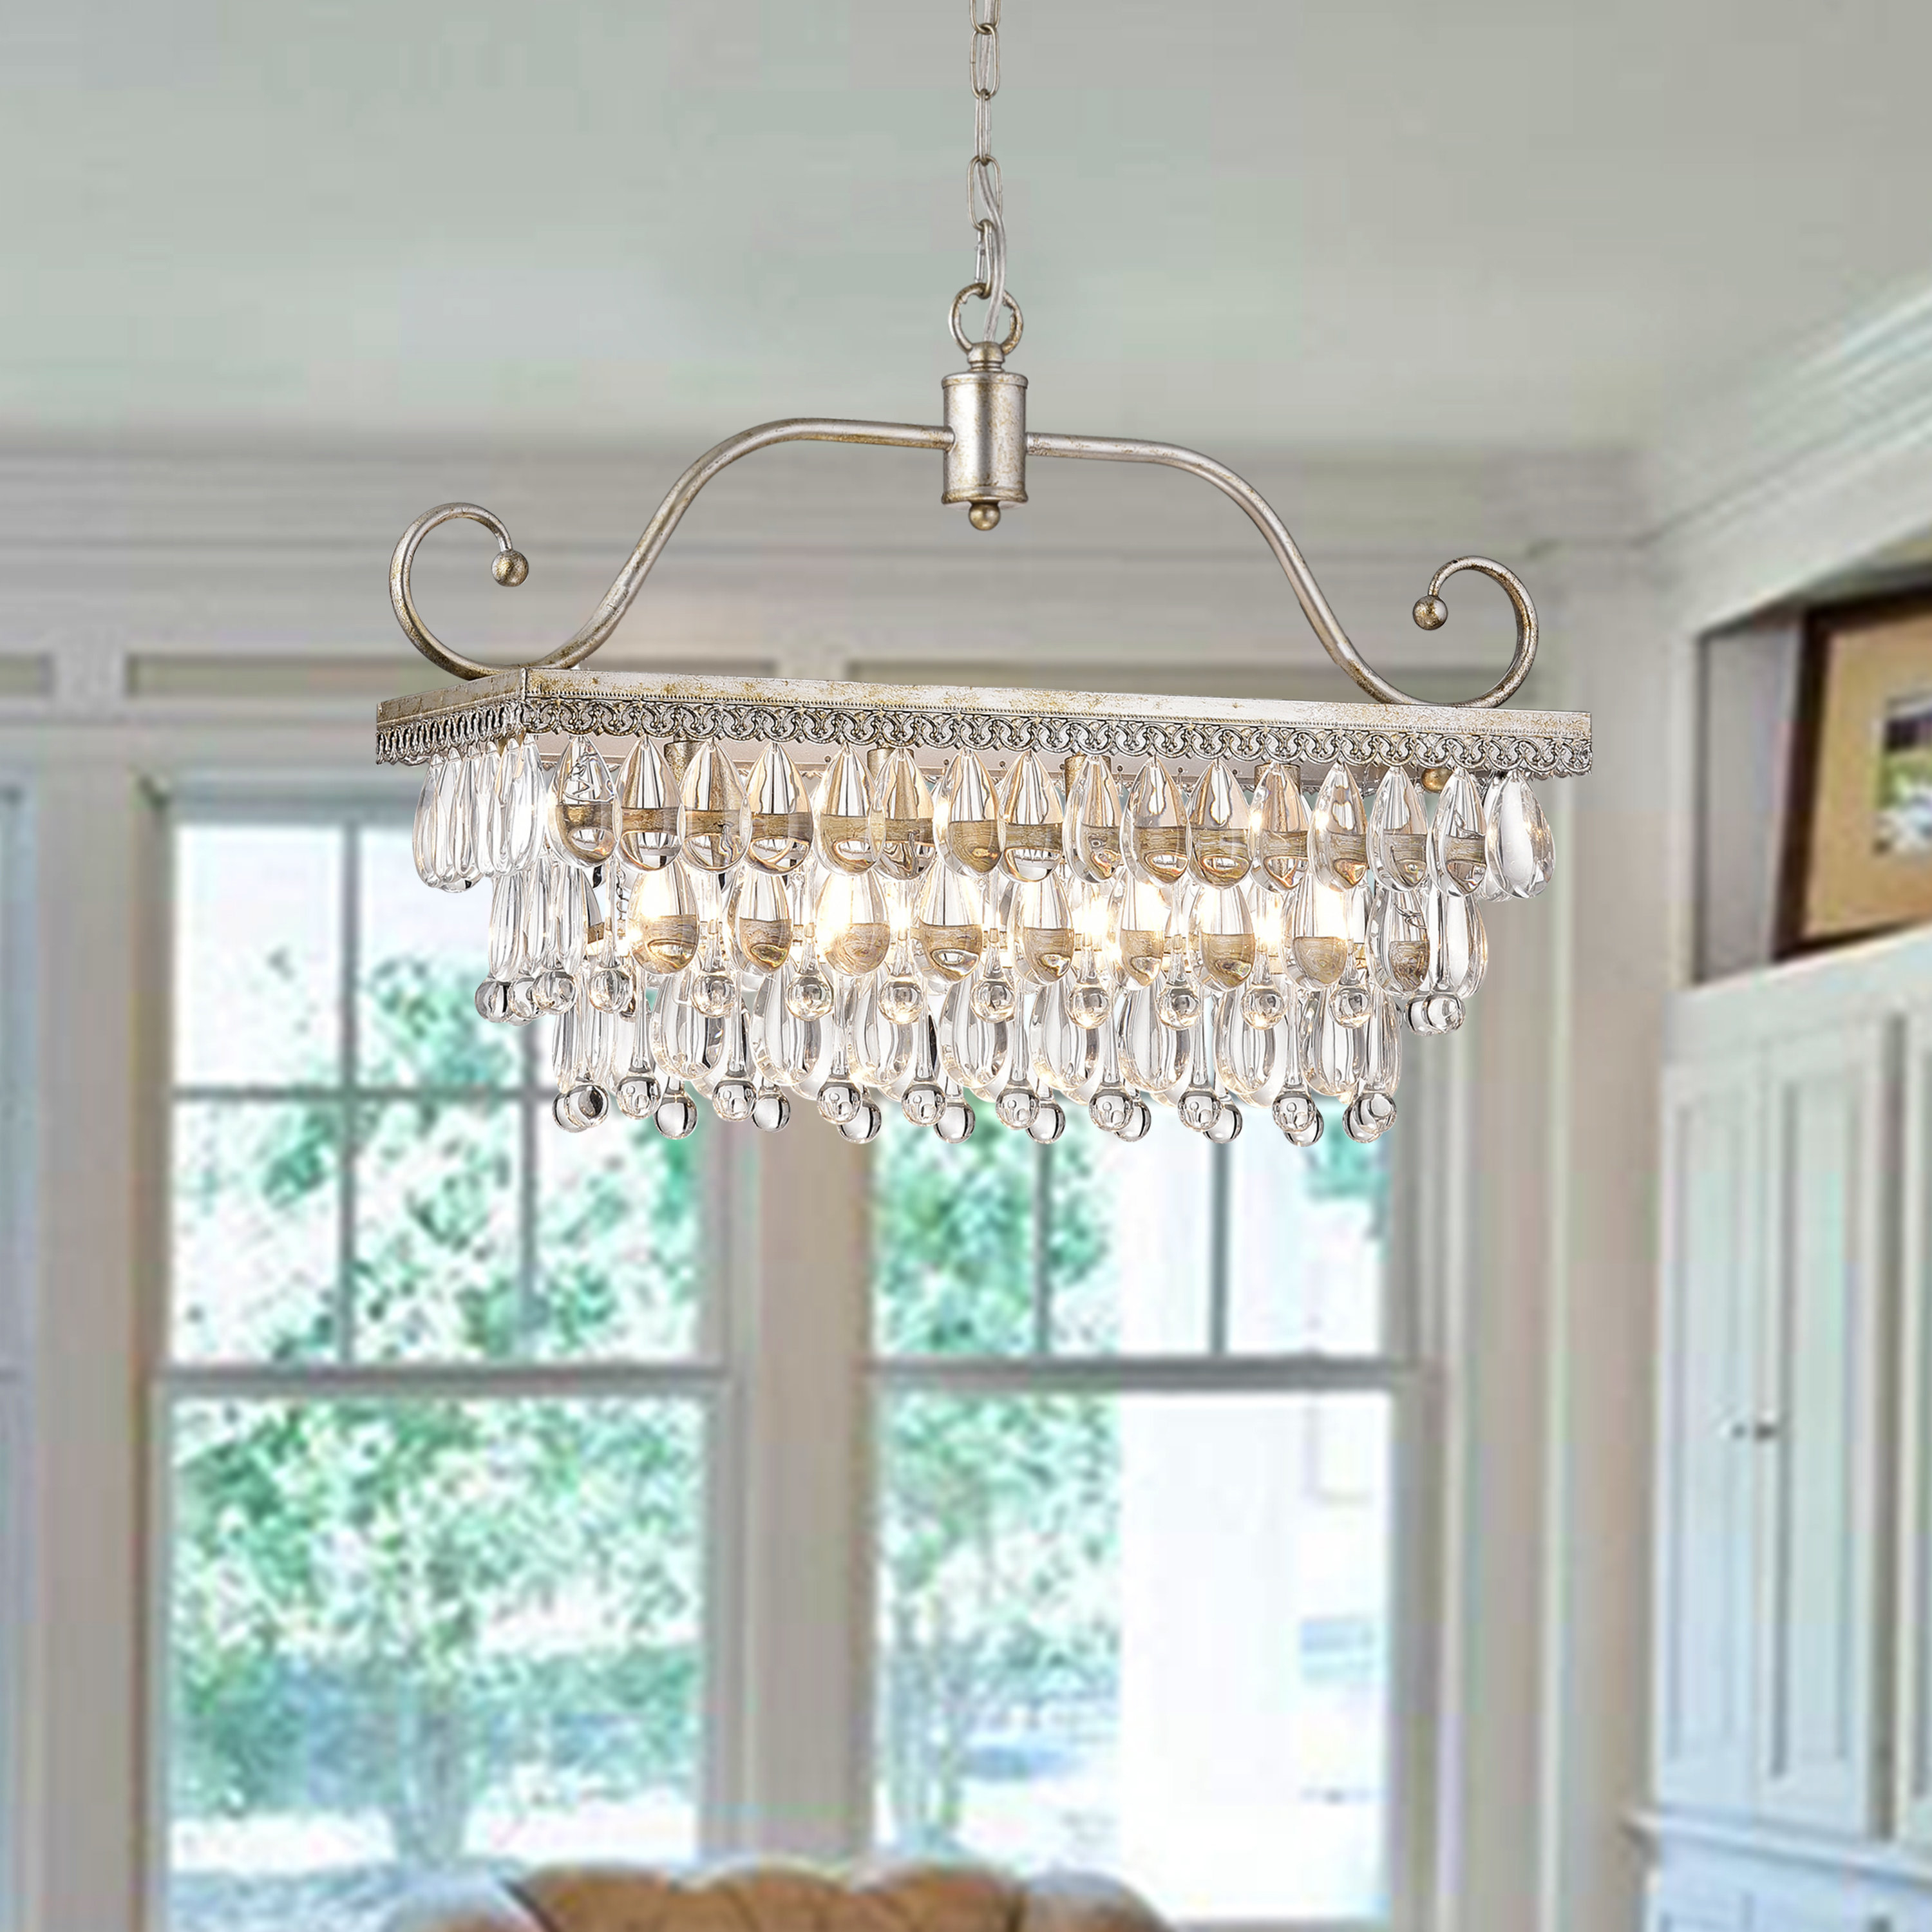 Von 4-Light Crystal Chandeliers within Widely used Gerhart 4-Light Crystal Chandelier